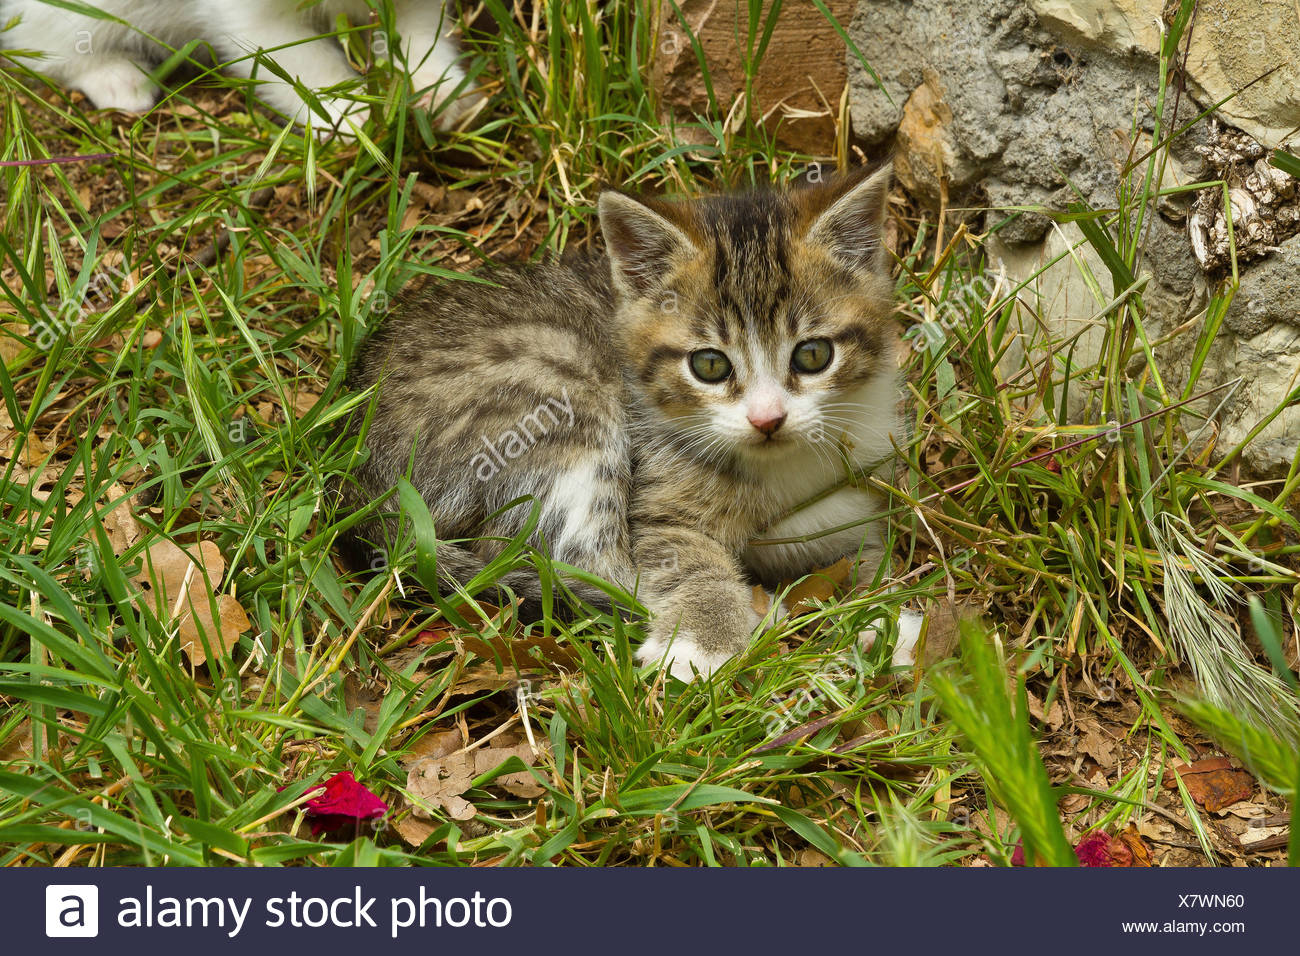 Animal, cat, kitten, young, garden, domestic animal, pet, meadow - Stock Image